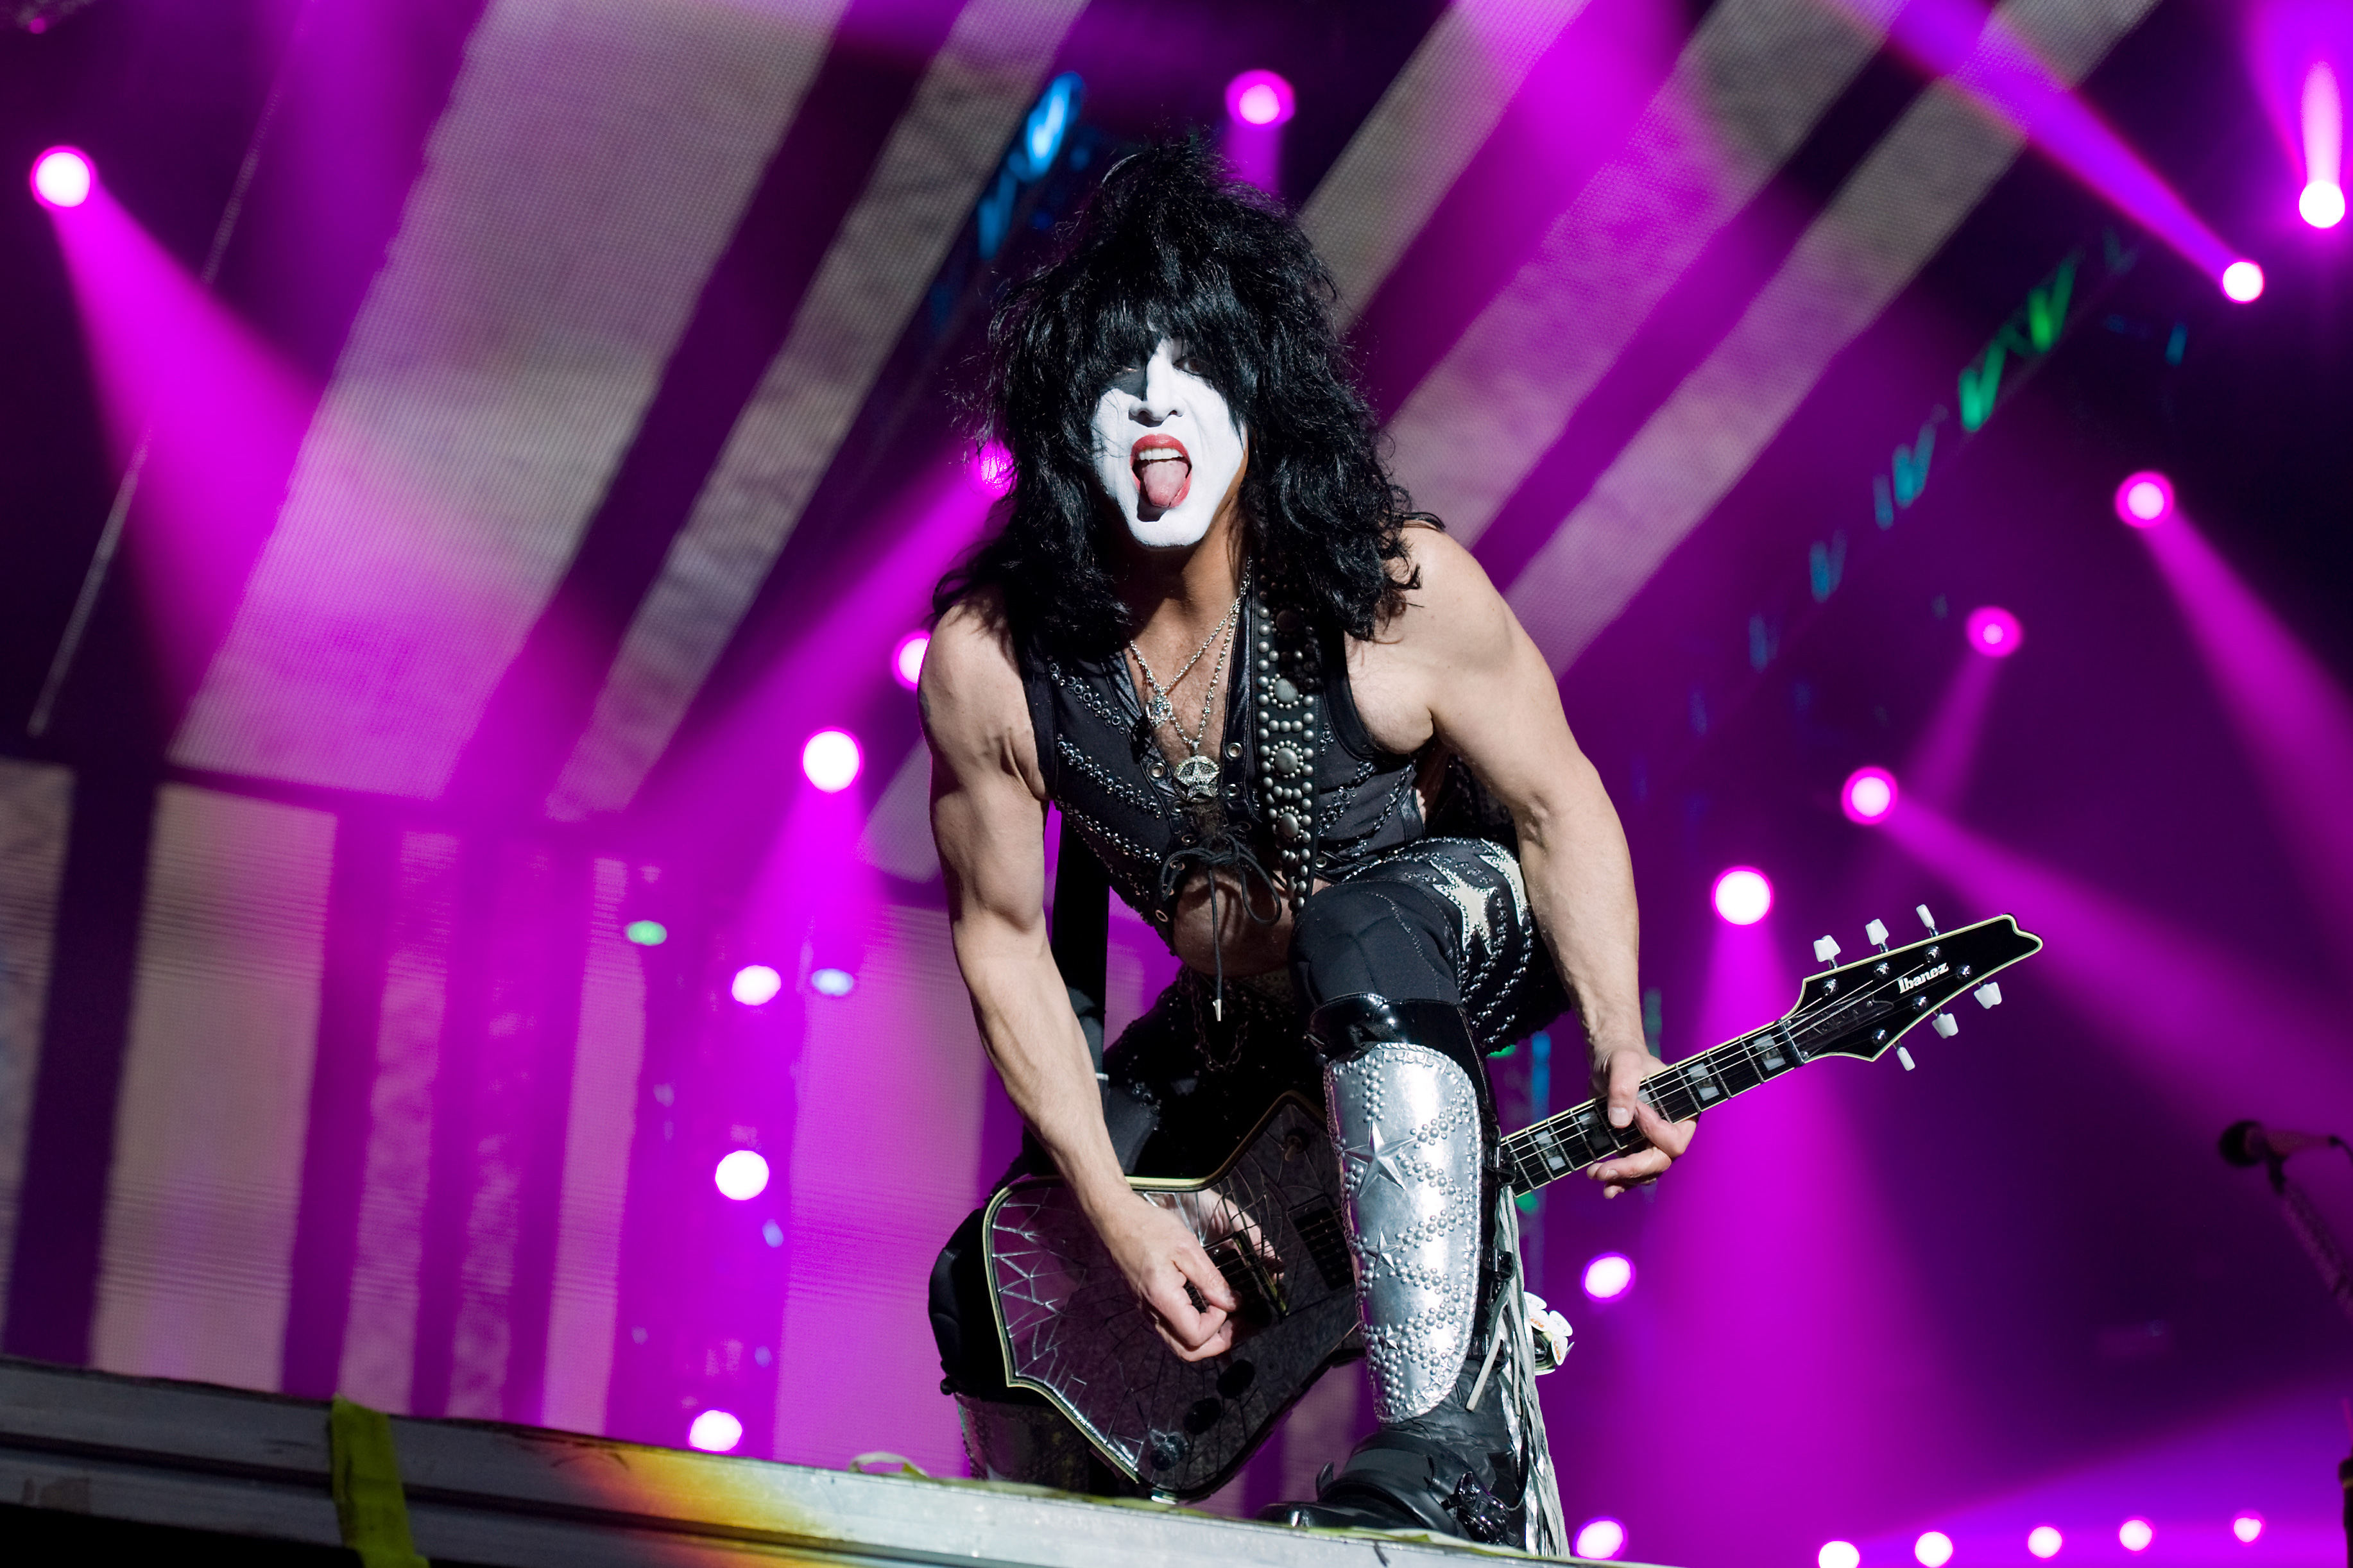 Paul stanley on gay rumours